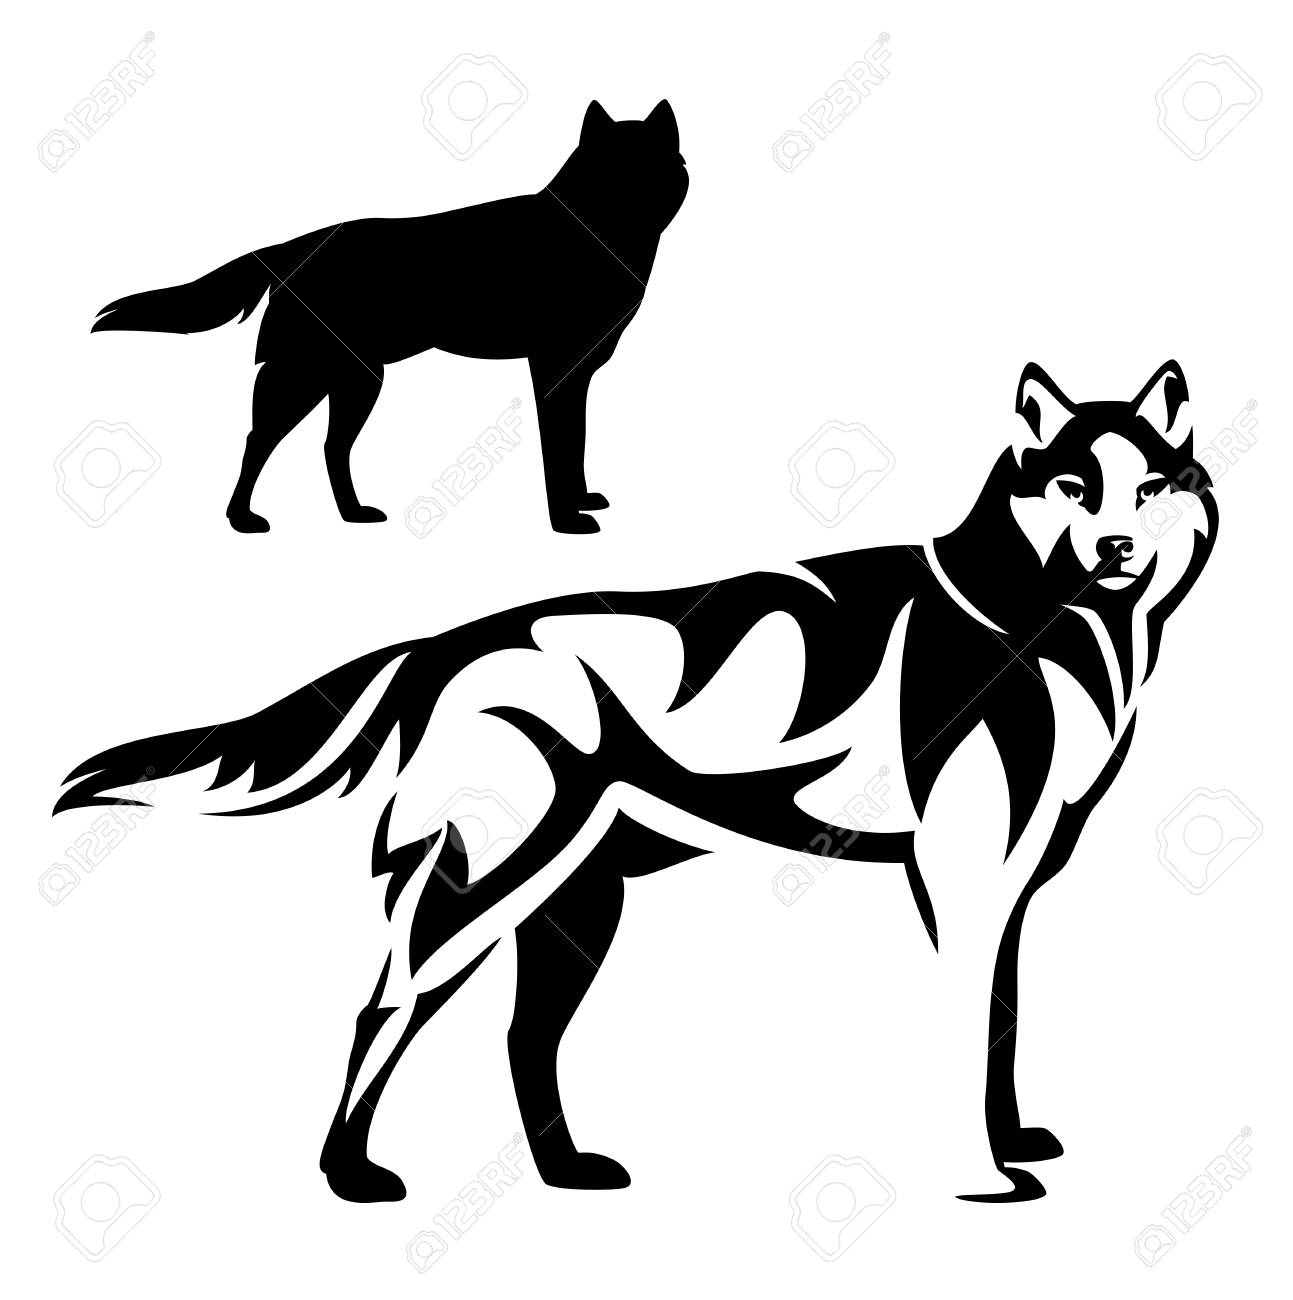 1293x1300 Standing Wolf Black And White Vector Outline And Silhouette Design